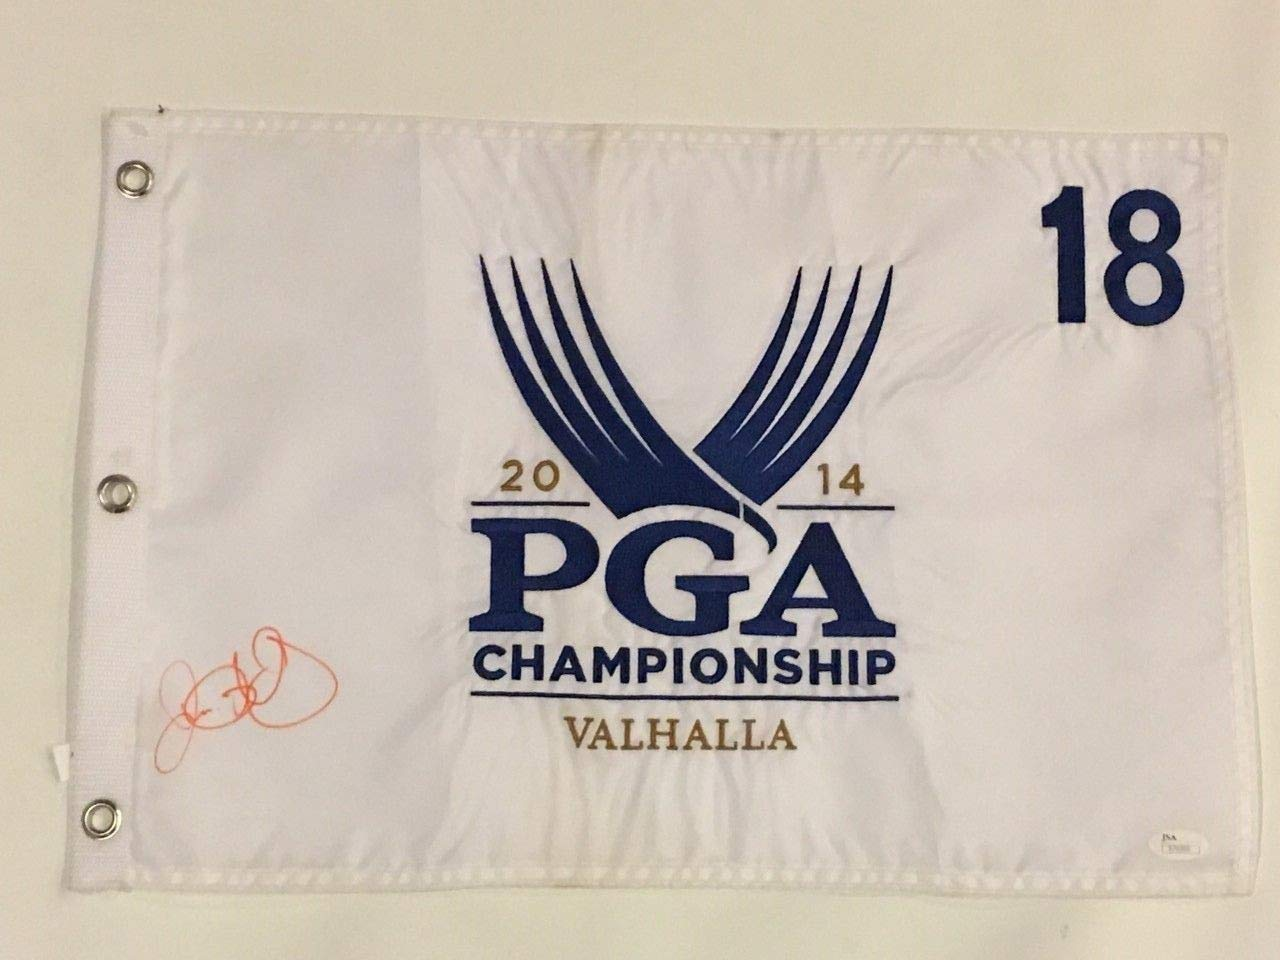 Rory Mcilroy Autographed Signed 2014 Pga Championship Pin Flag Valhalla JSA Authentic